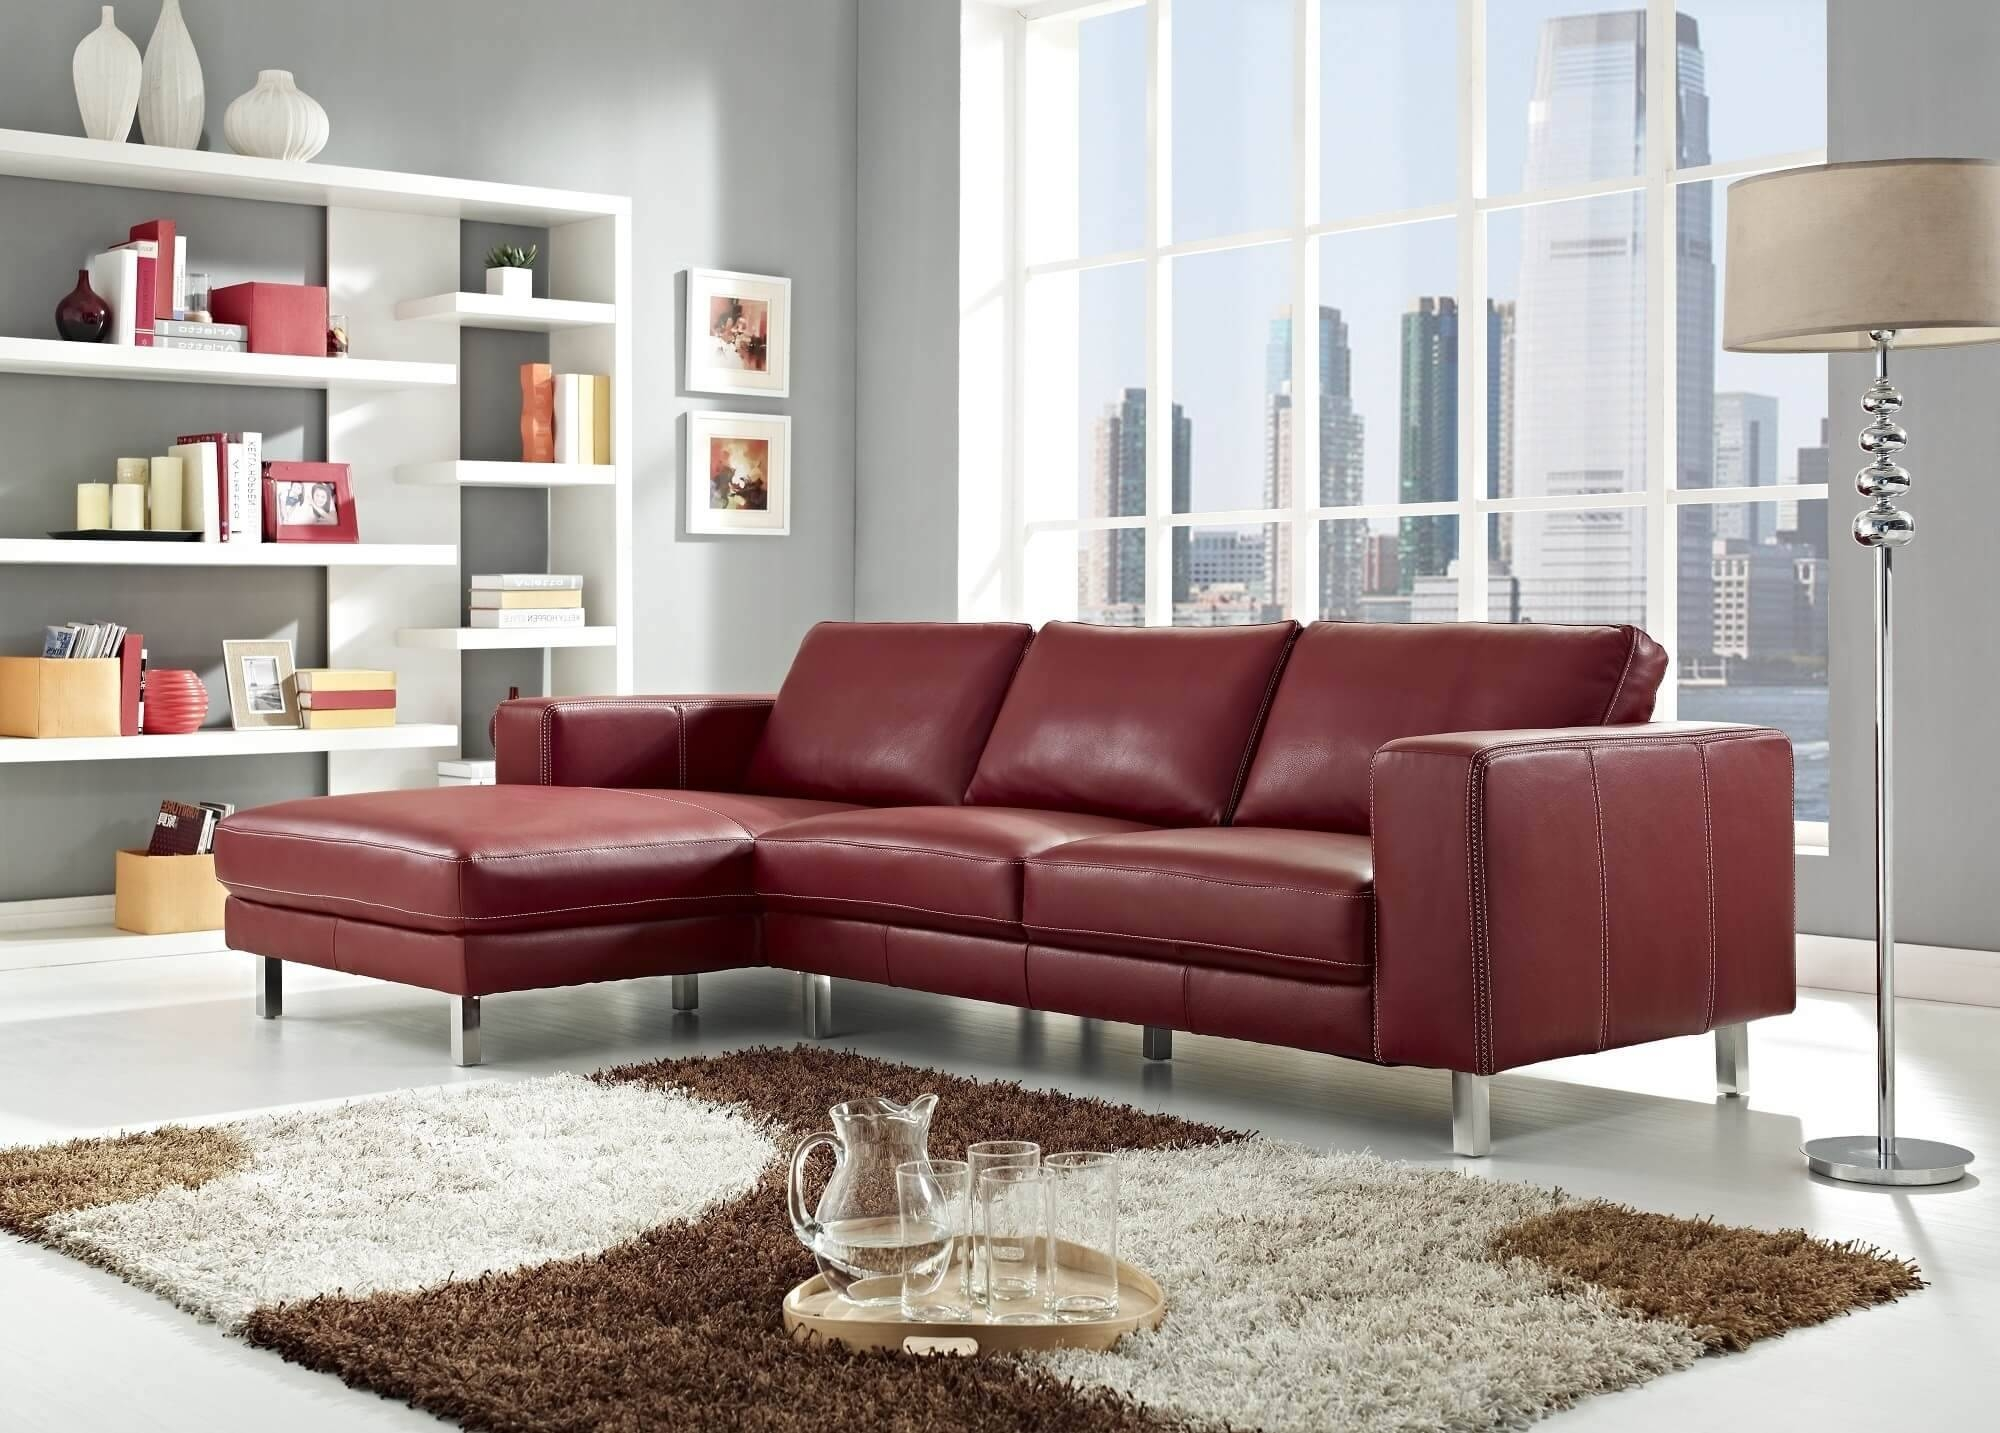 Furniture: Comfortable Deep Seat Sectional For Your Living Room regarding Red Microfiber Sectional Sofas (Image 8 of 30)